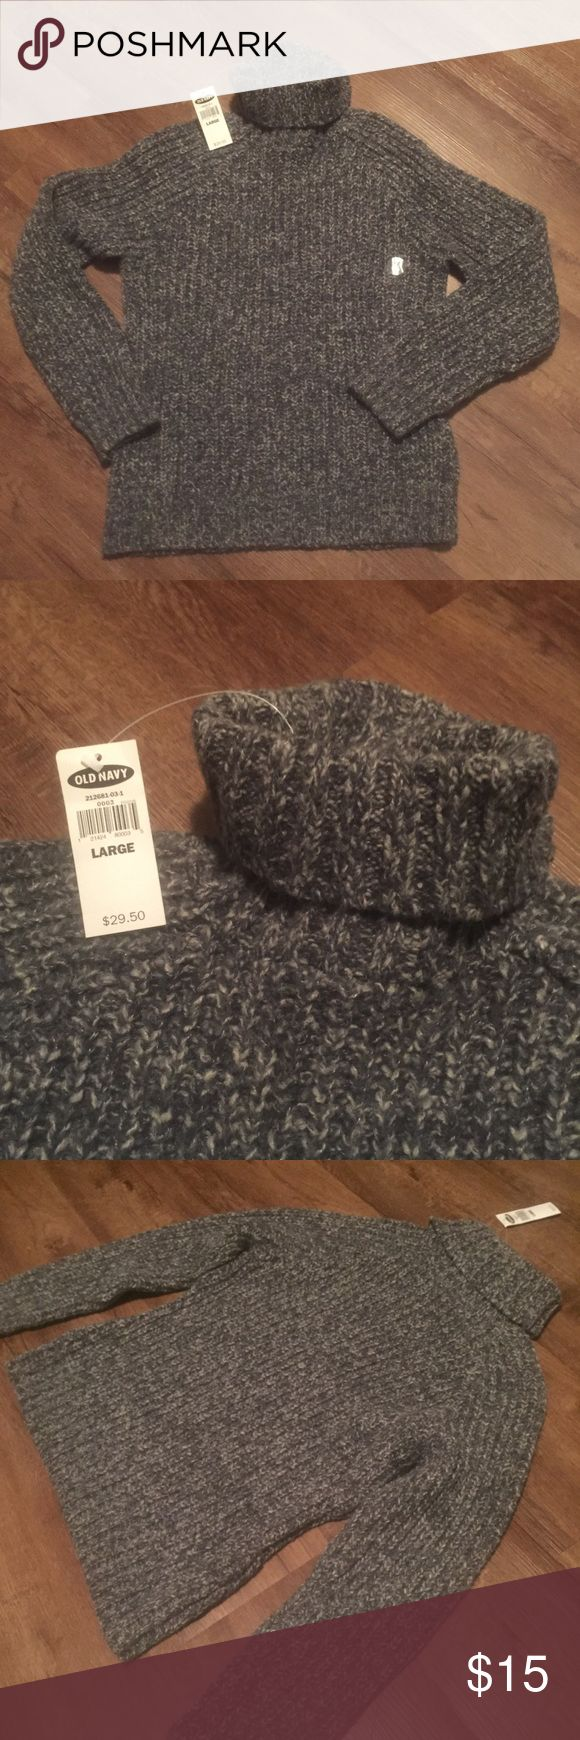 🎀NWT Grey Old Navy Sweater🎀 Grey turtleneck sweater  NWT  Size Large Old Navy brand Super cozy and ready for winter weather Old Navy Sweaters Cowl & Turtlenecks